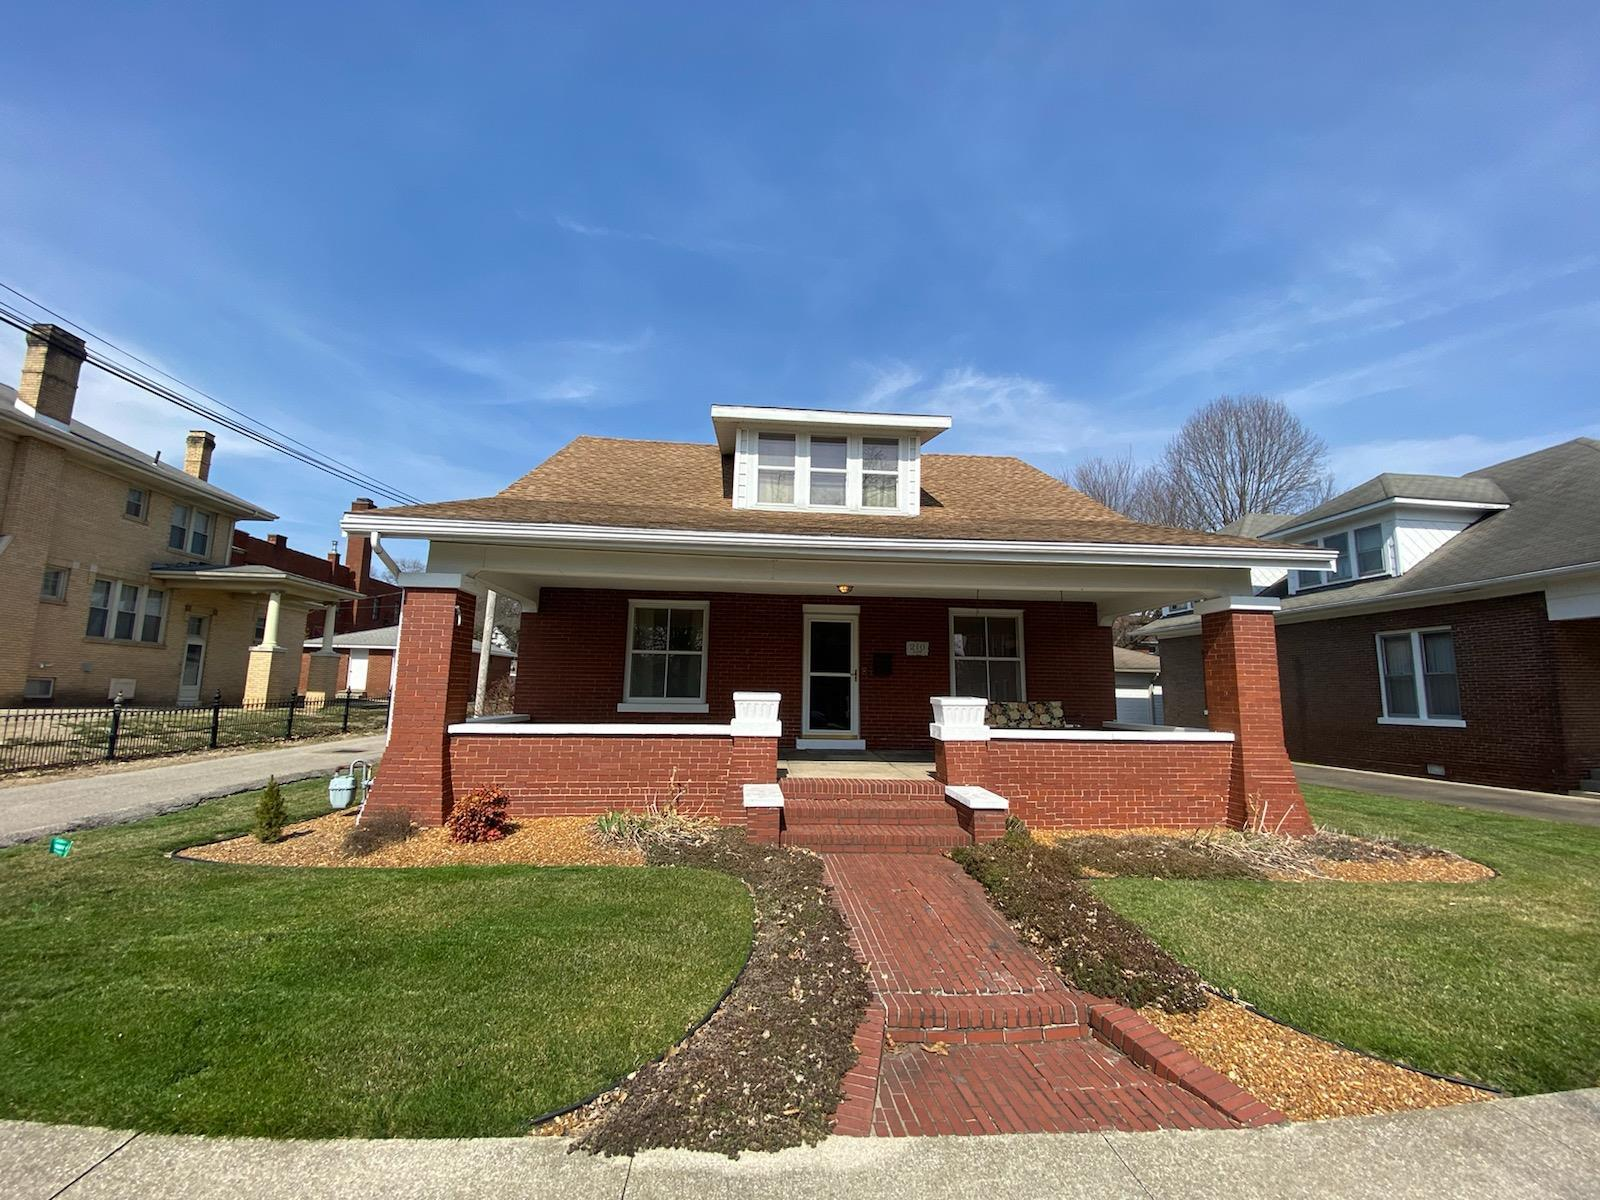 Check out this well maintained 4 Bedroom 2 Bathroom Home in Huntingburg.  This Home is conveniently located near downtown shopping and entertainment.  The Home includes a detached large 1 car garage.  You will also find a large back patio for entertaining guests and having cookouts!